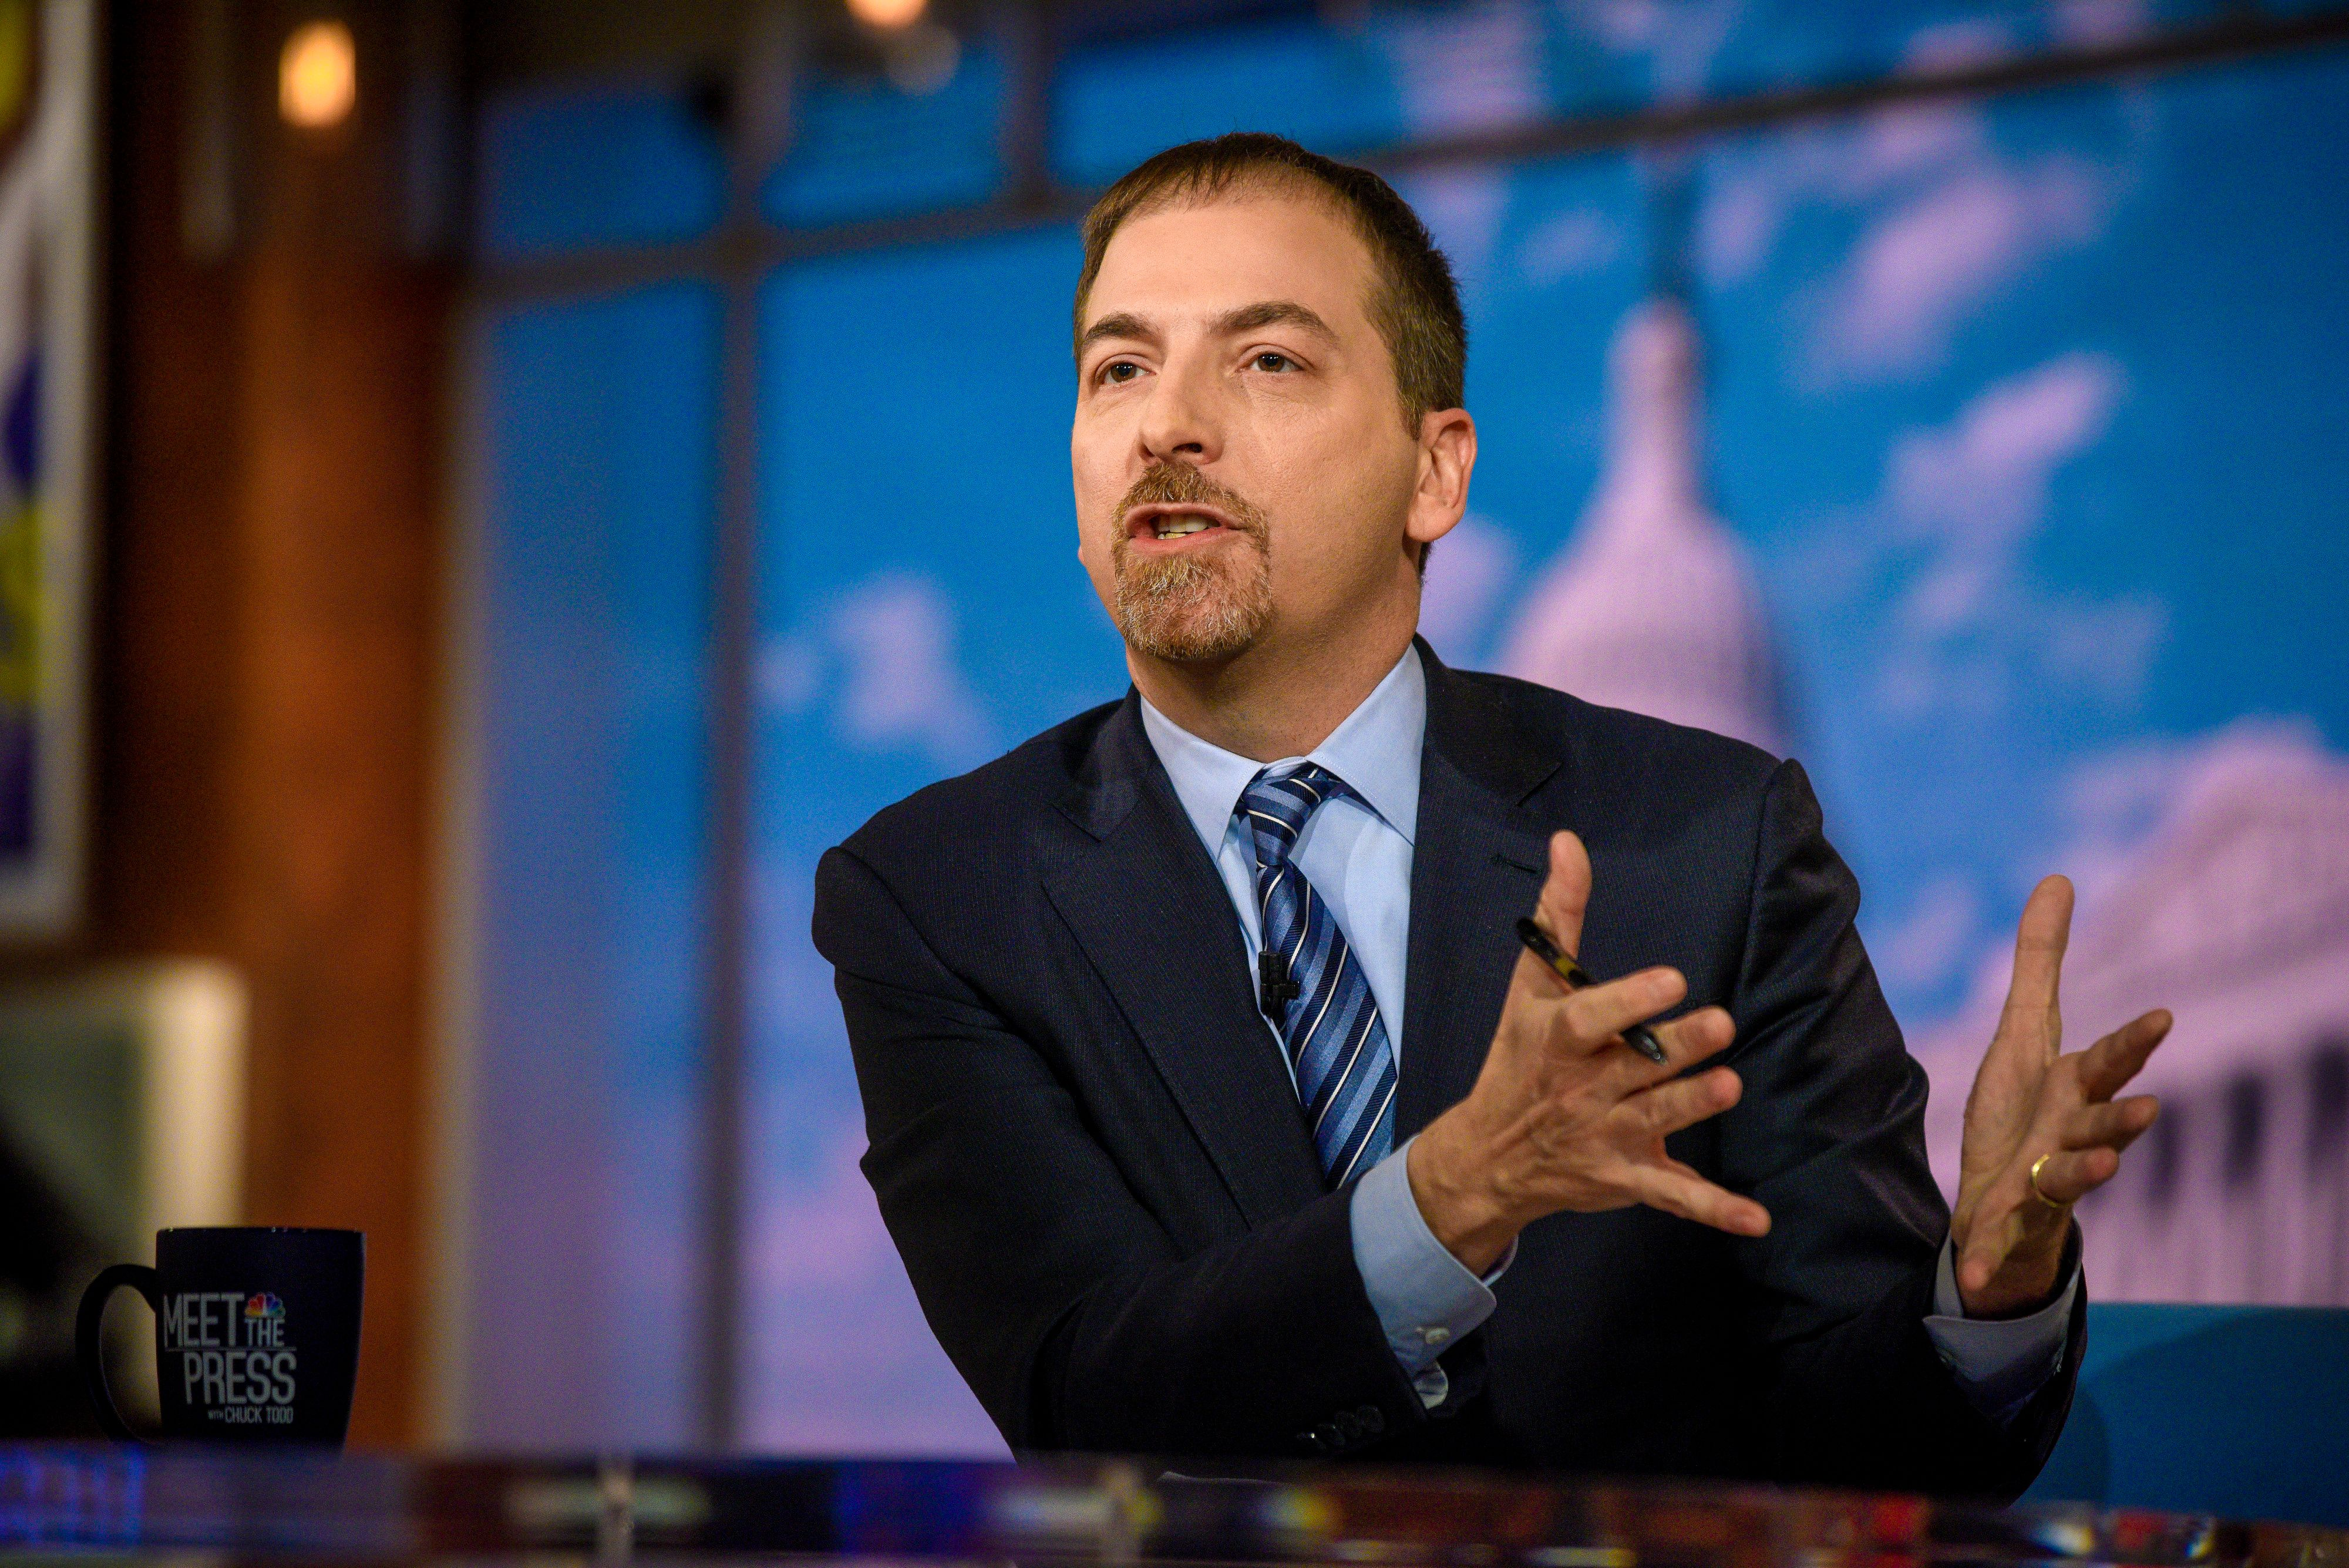 MEET THE PRESS -- Pictured: (l-r)  Moderator Chuck Todd appears on 'Meet the Press' in Washington, D.C., Sunday, Feb. 3, 2019.  (Photo by: William B. Plowman/NBC/NBC NewsWire via Getty Images)